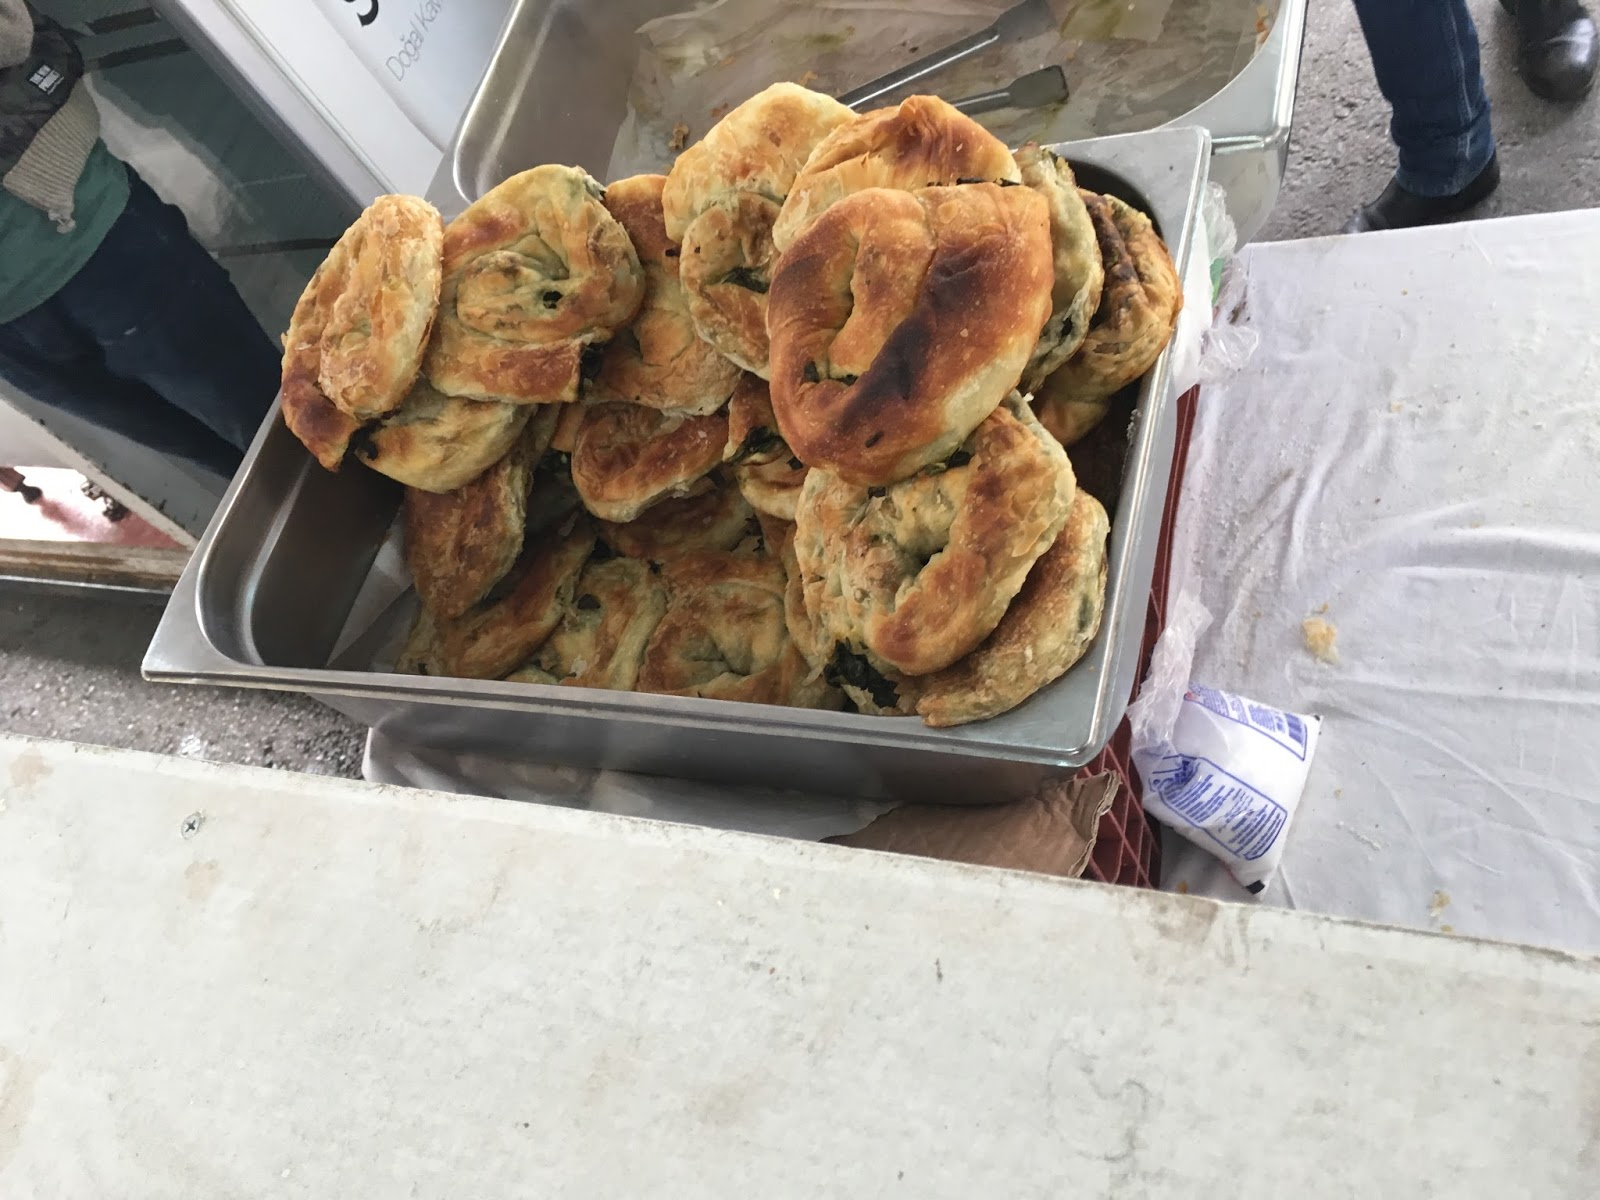 LeeZe visits Izmir Sunday farmer's market. . Home made pastry mostly stuffed with greens, though some have potato inside.